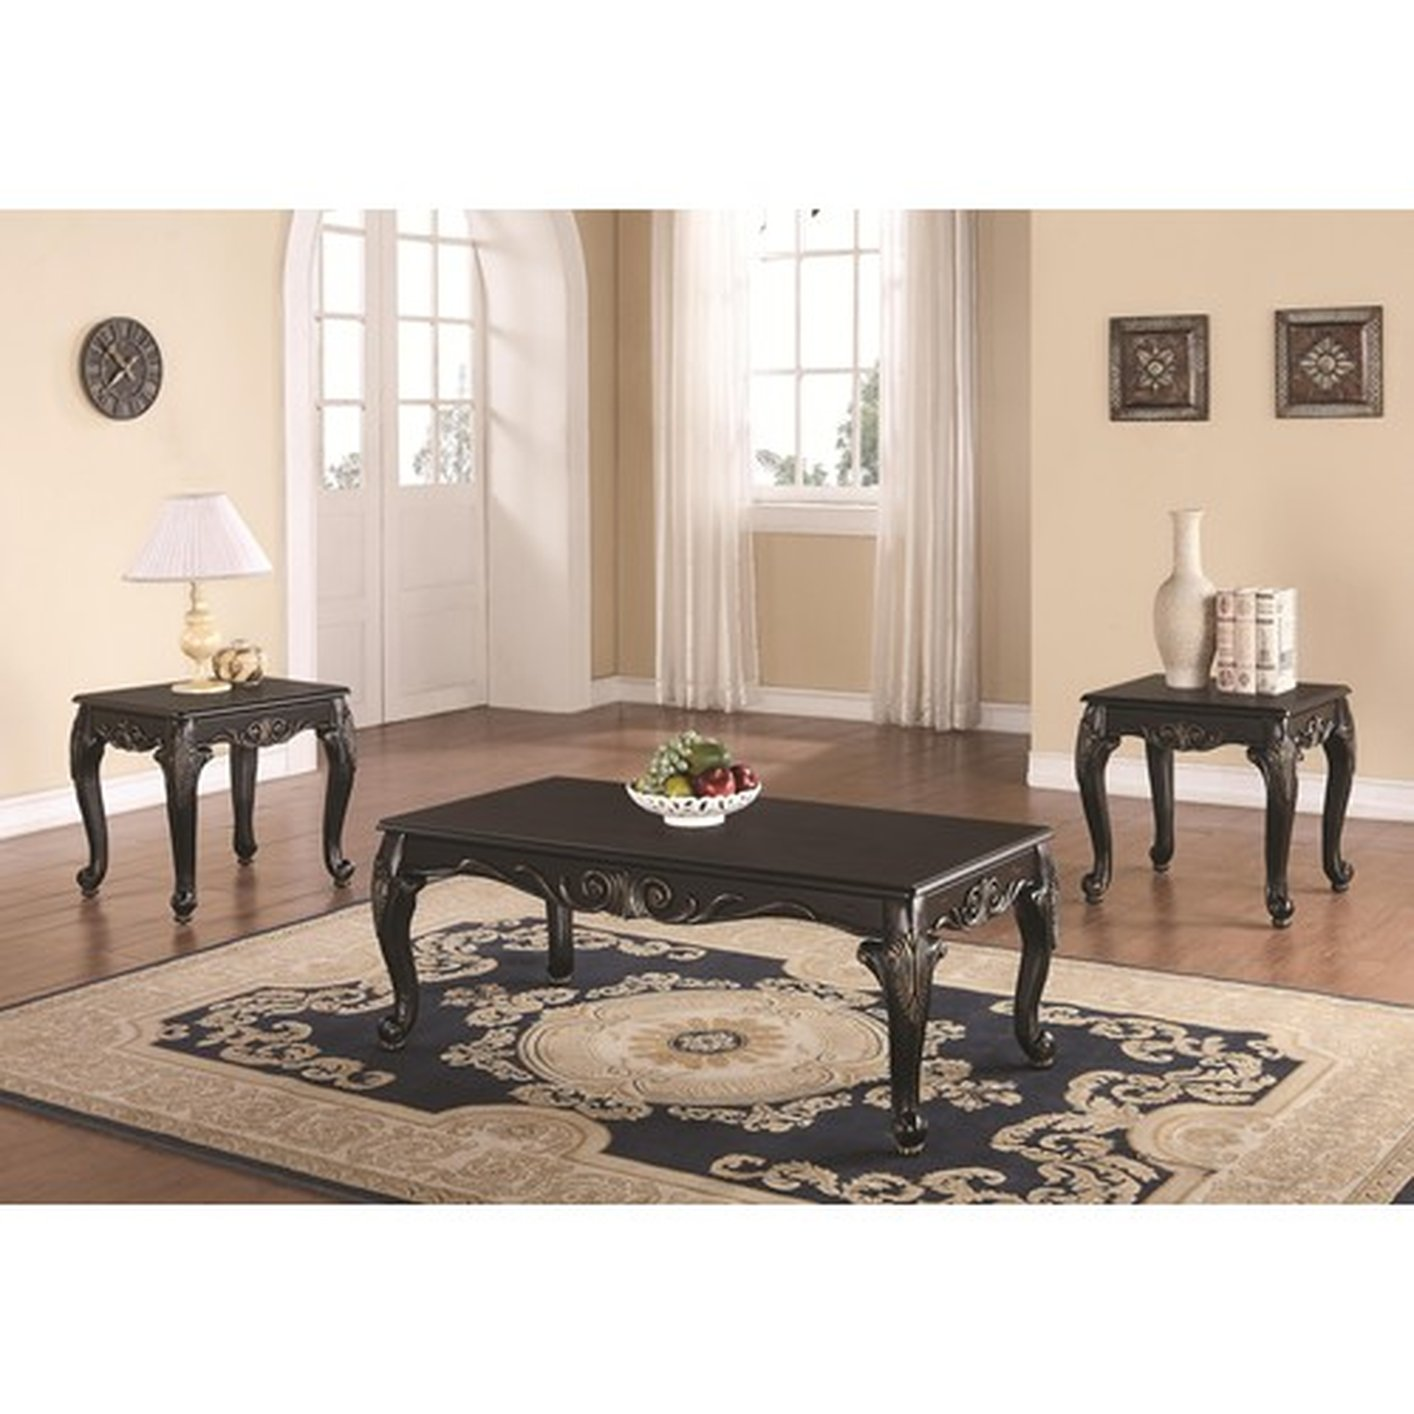 174d58b91231 Black Wood Coffee Table Set - Steal-A-Sofa Furniture Outlet Los ...